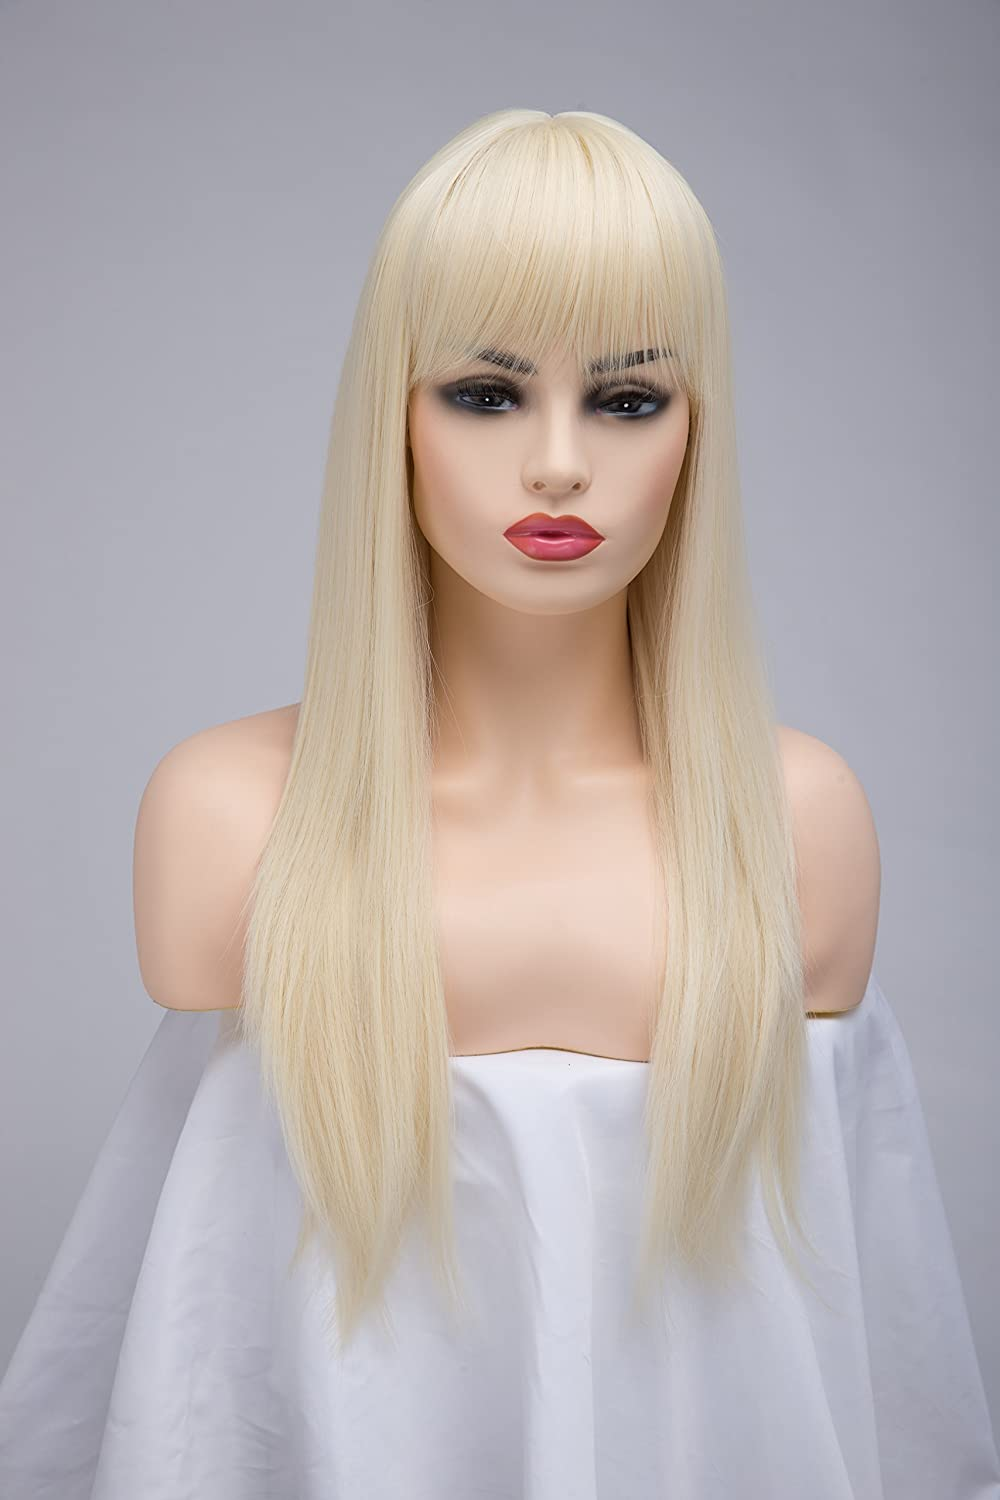 BESTUNG Long Straight Ash Blonde Wigs for Women Ladies Synthetic Full Hair Natural Light Honey Strawberry Gold Wig with Bangs for Cosplay Costume or Daily Life